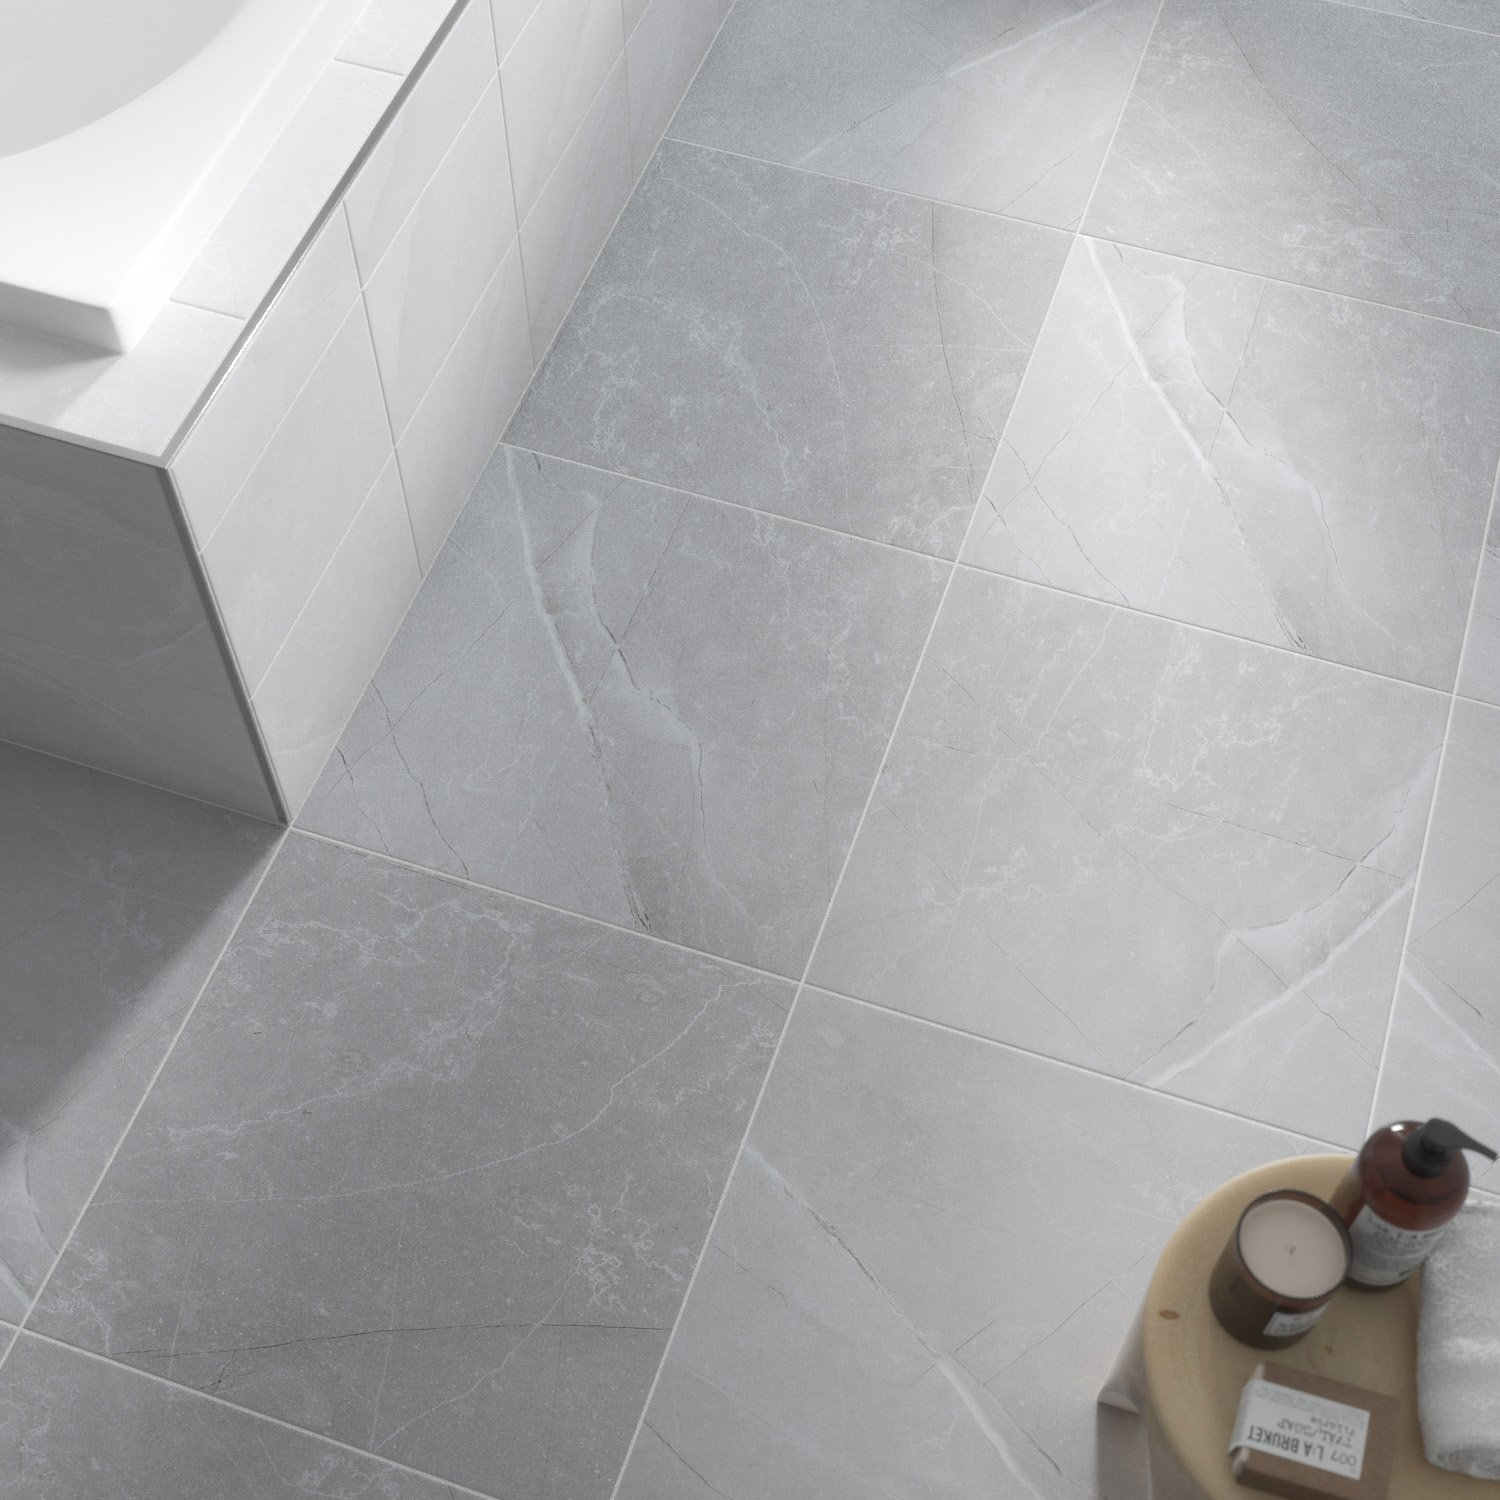 Melford Marble_MEL01A_Light Grey_Matt_300x200_MEL02N_Dark Grey_Natural_500x500_Bathroom [2].jpg